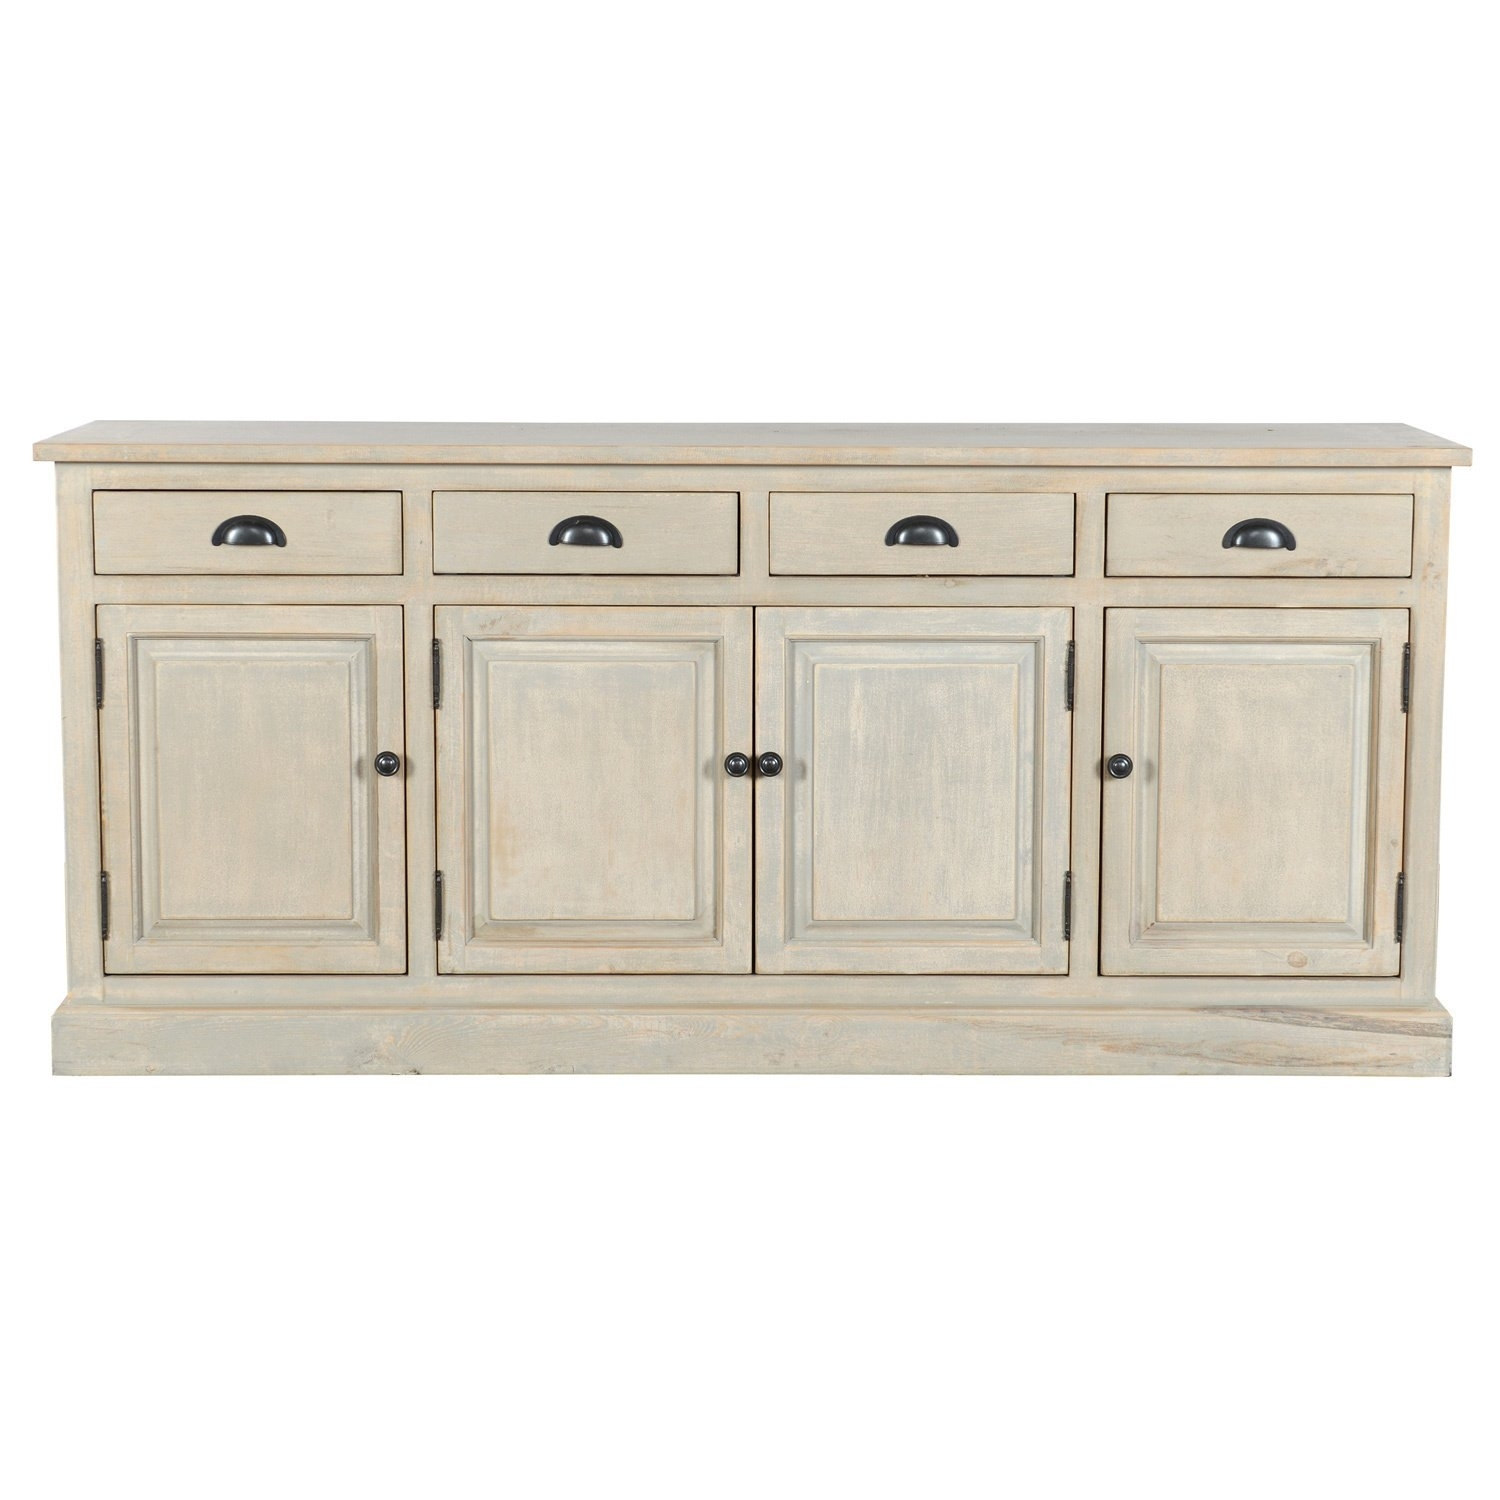 Shop Wilson Reclaimed Wood 79-Inch Sideboardkosas Home - Free for Reclaimed Pine Turquoise 4-Door Sideboards (Image 24 of 30)